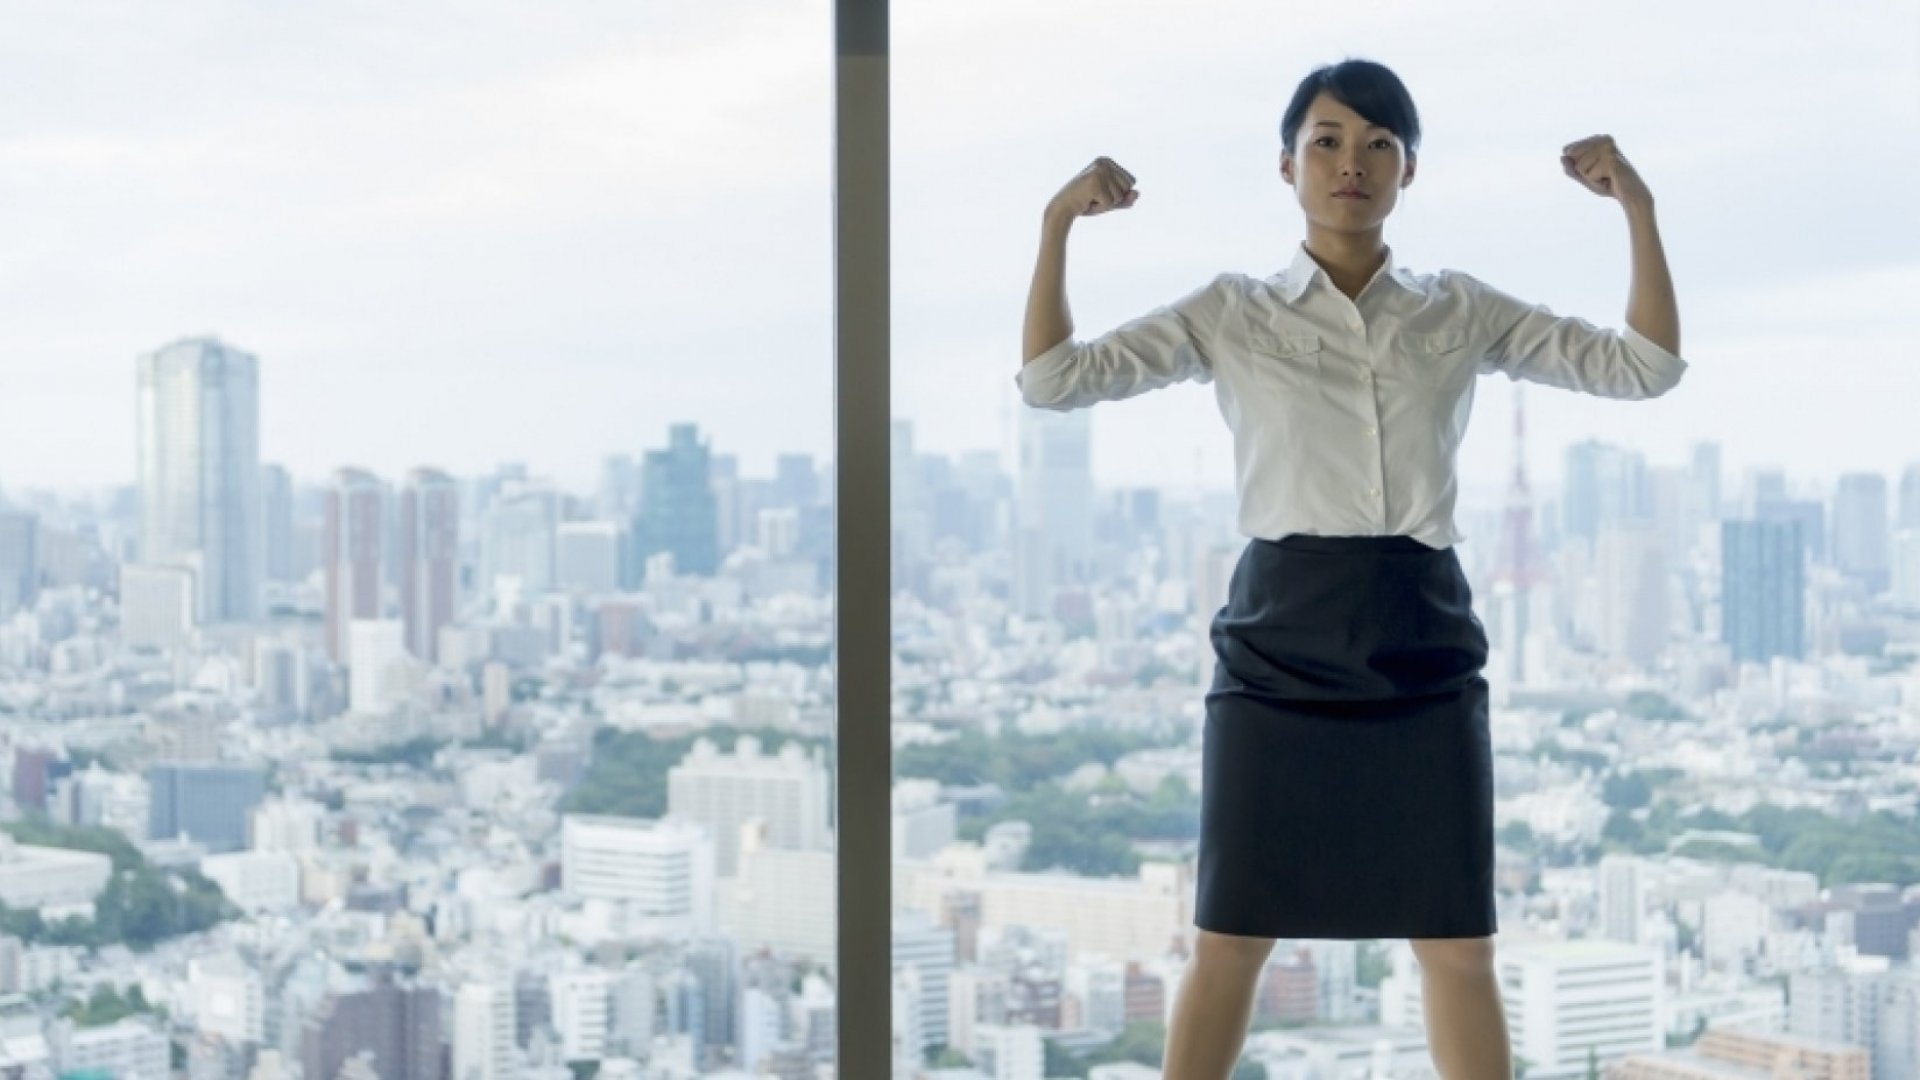 7 Proven Ways to Master Your Self-Confidence